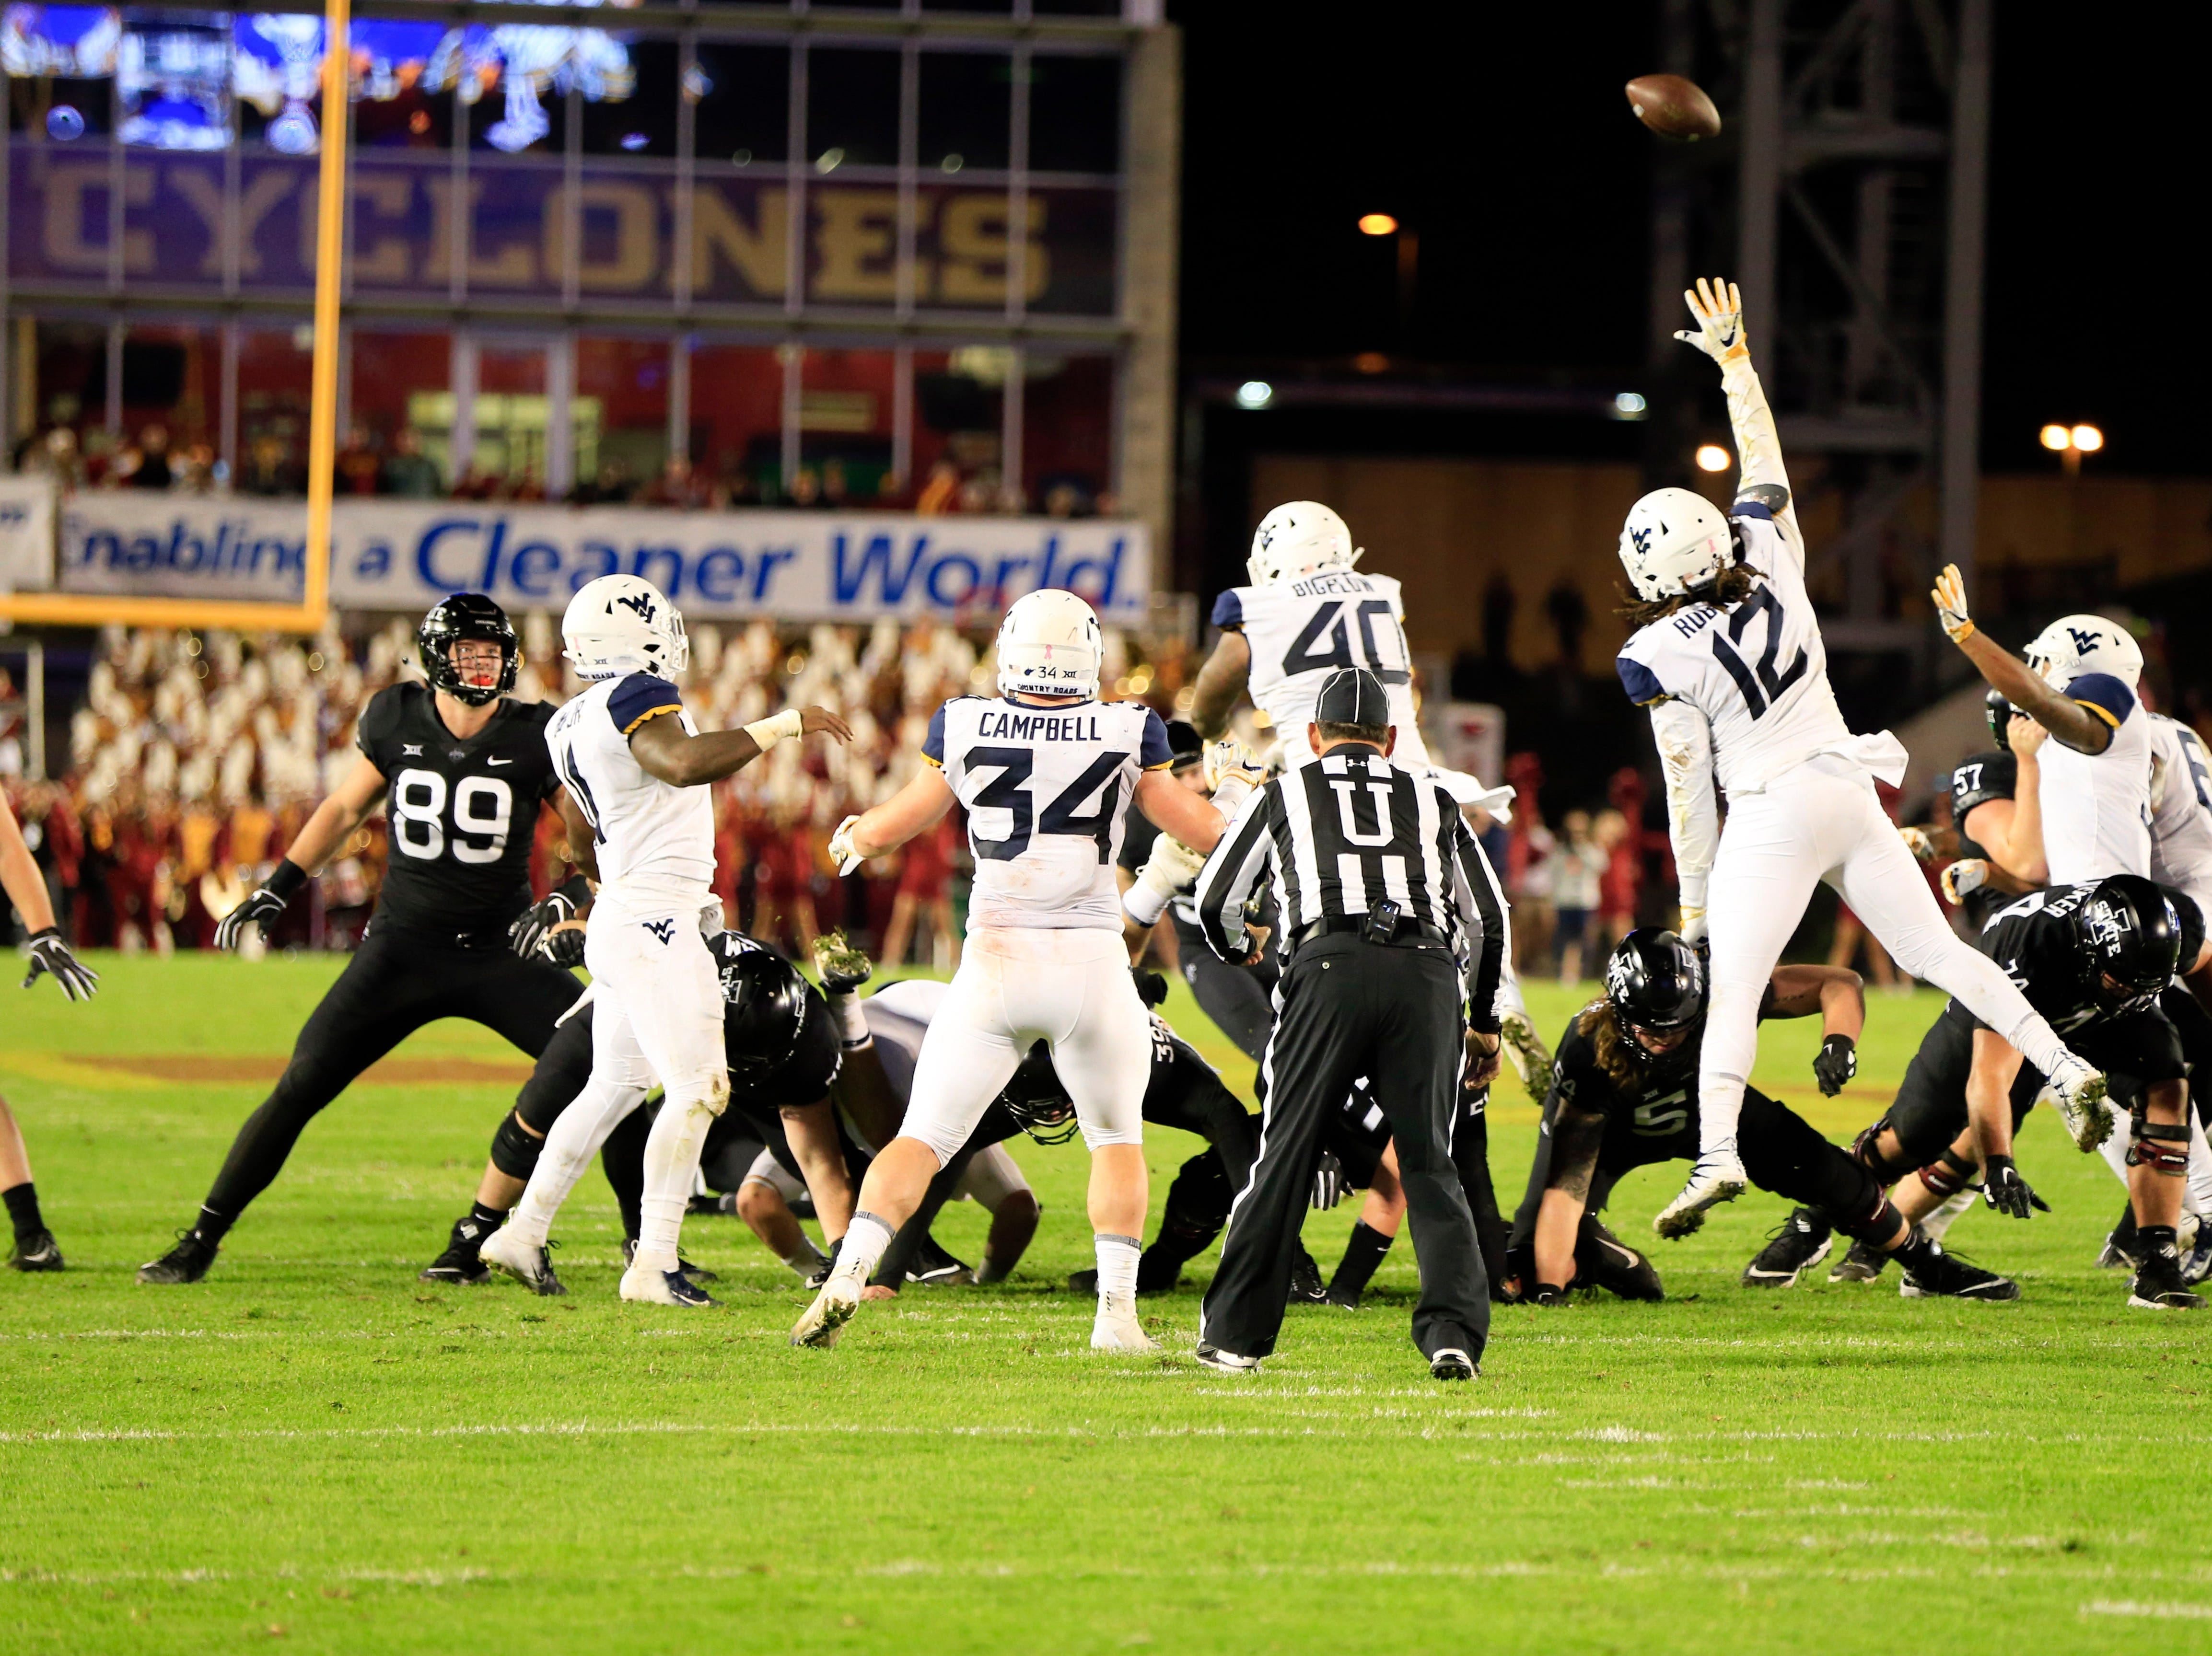 West Virginia blocks a field goal during the Iowa State West Virginia game at Jack Trice Stadium Saturday, Oct. 13, 2018.